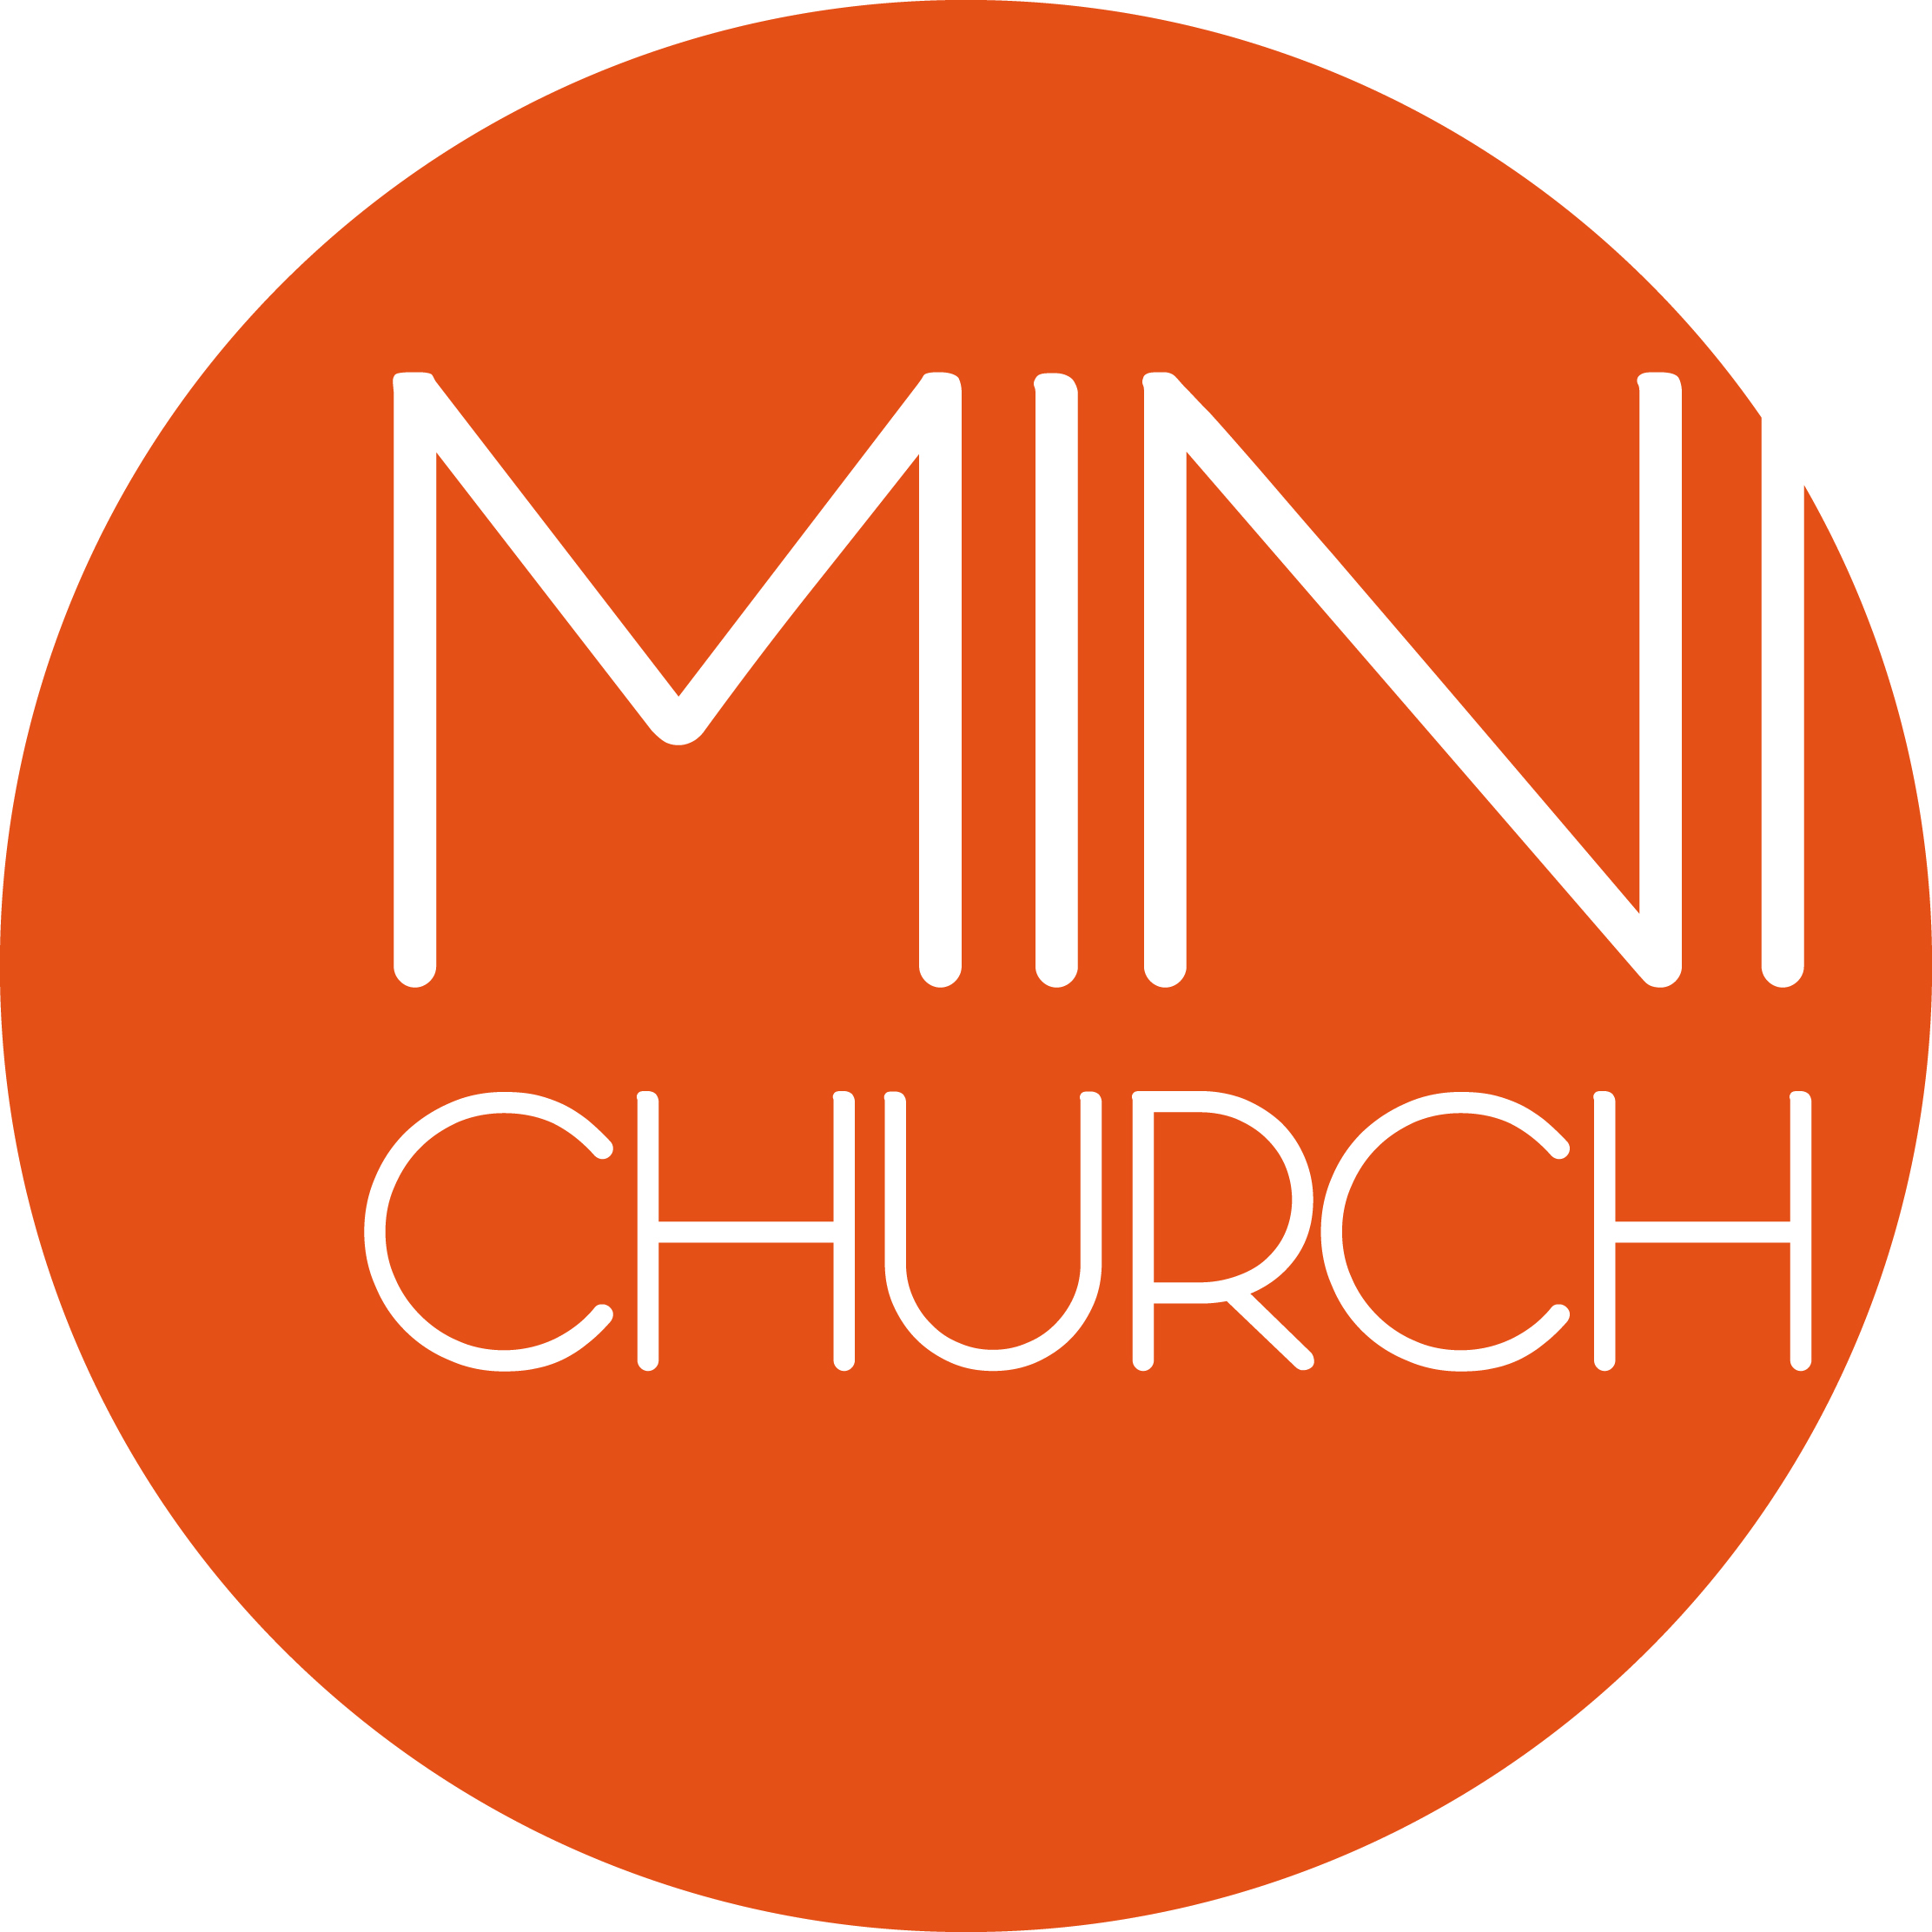 Mini church logo CMYK